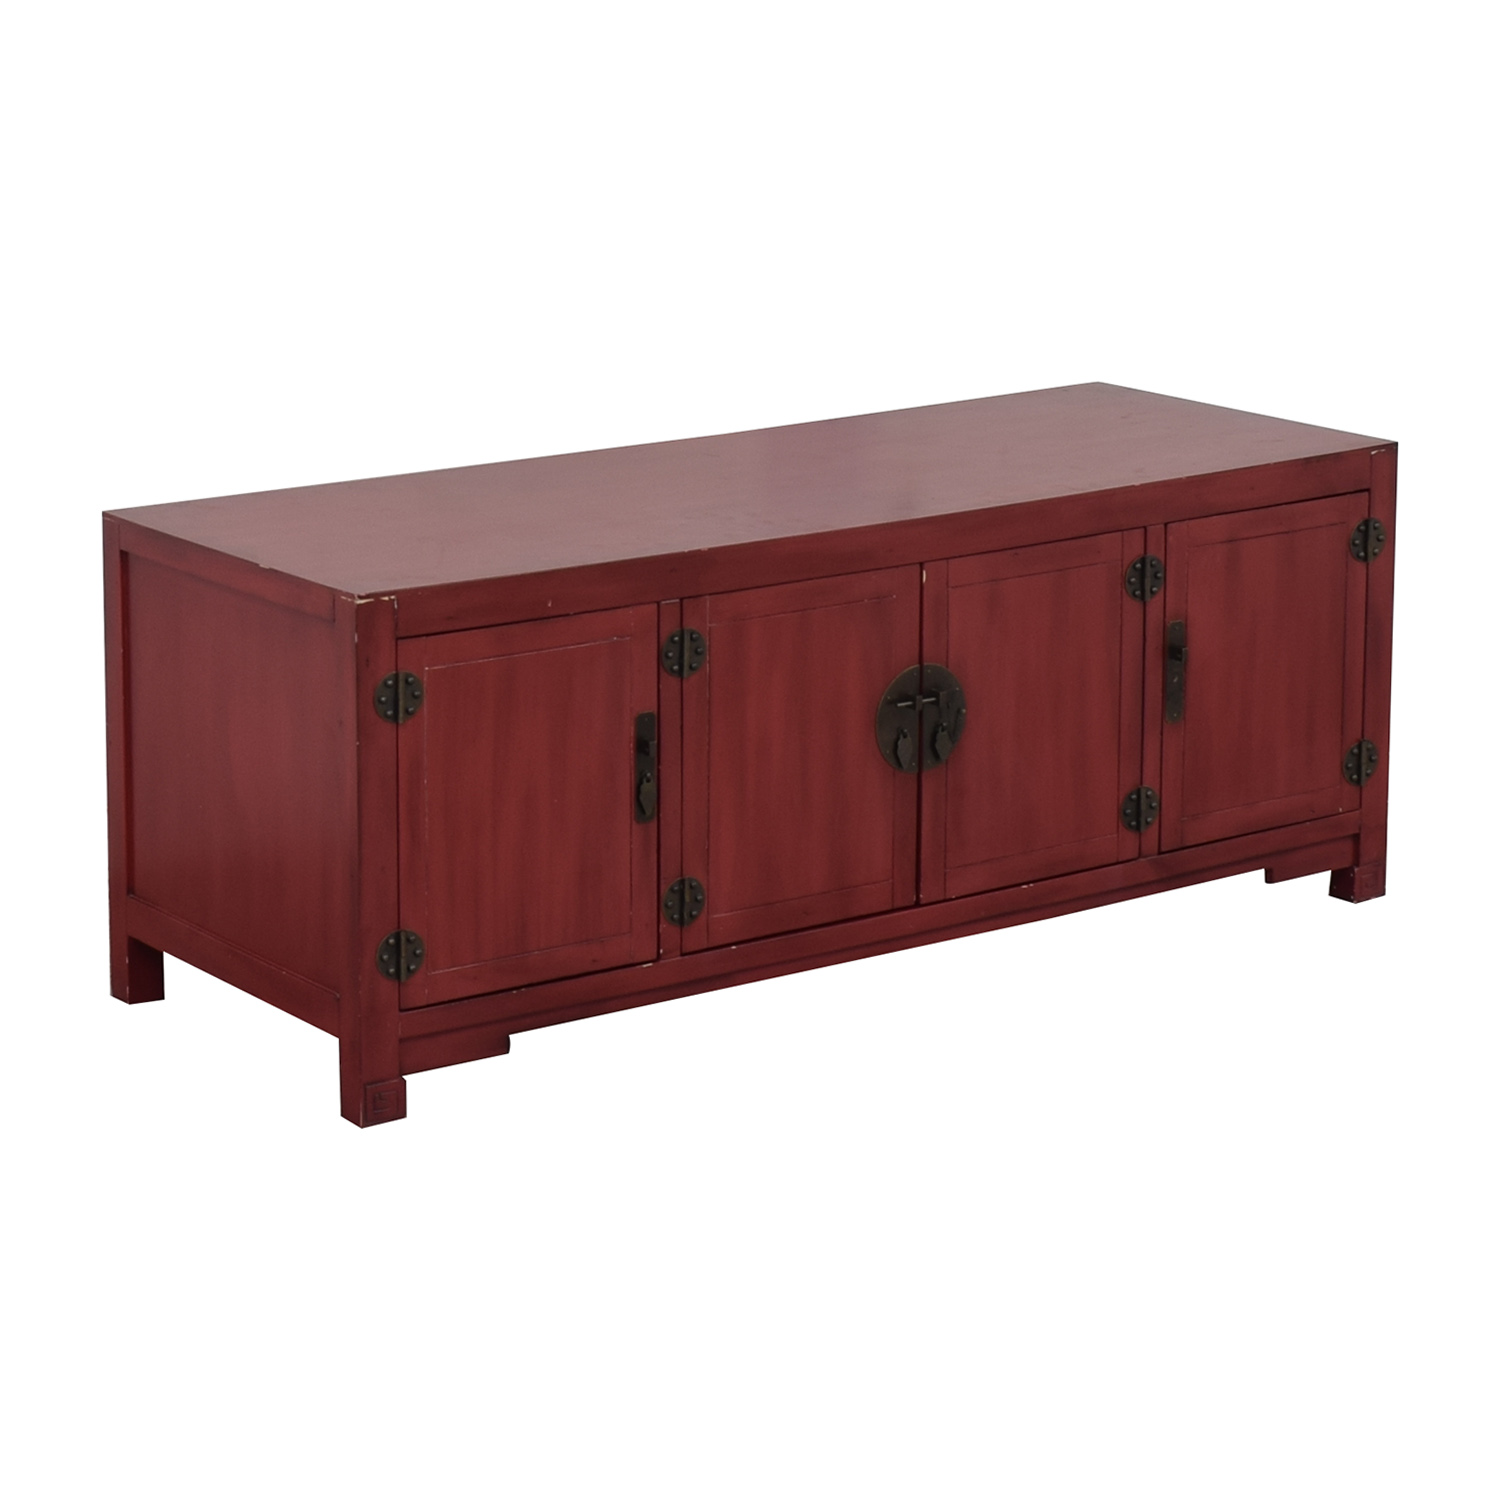 Klaussner Klaussner Red Media Unit coupon